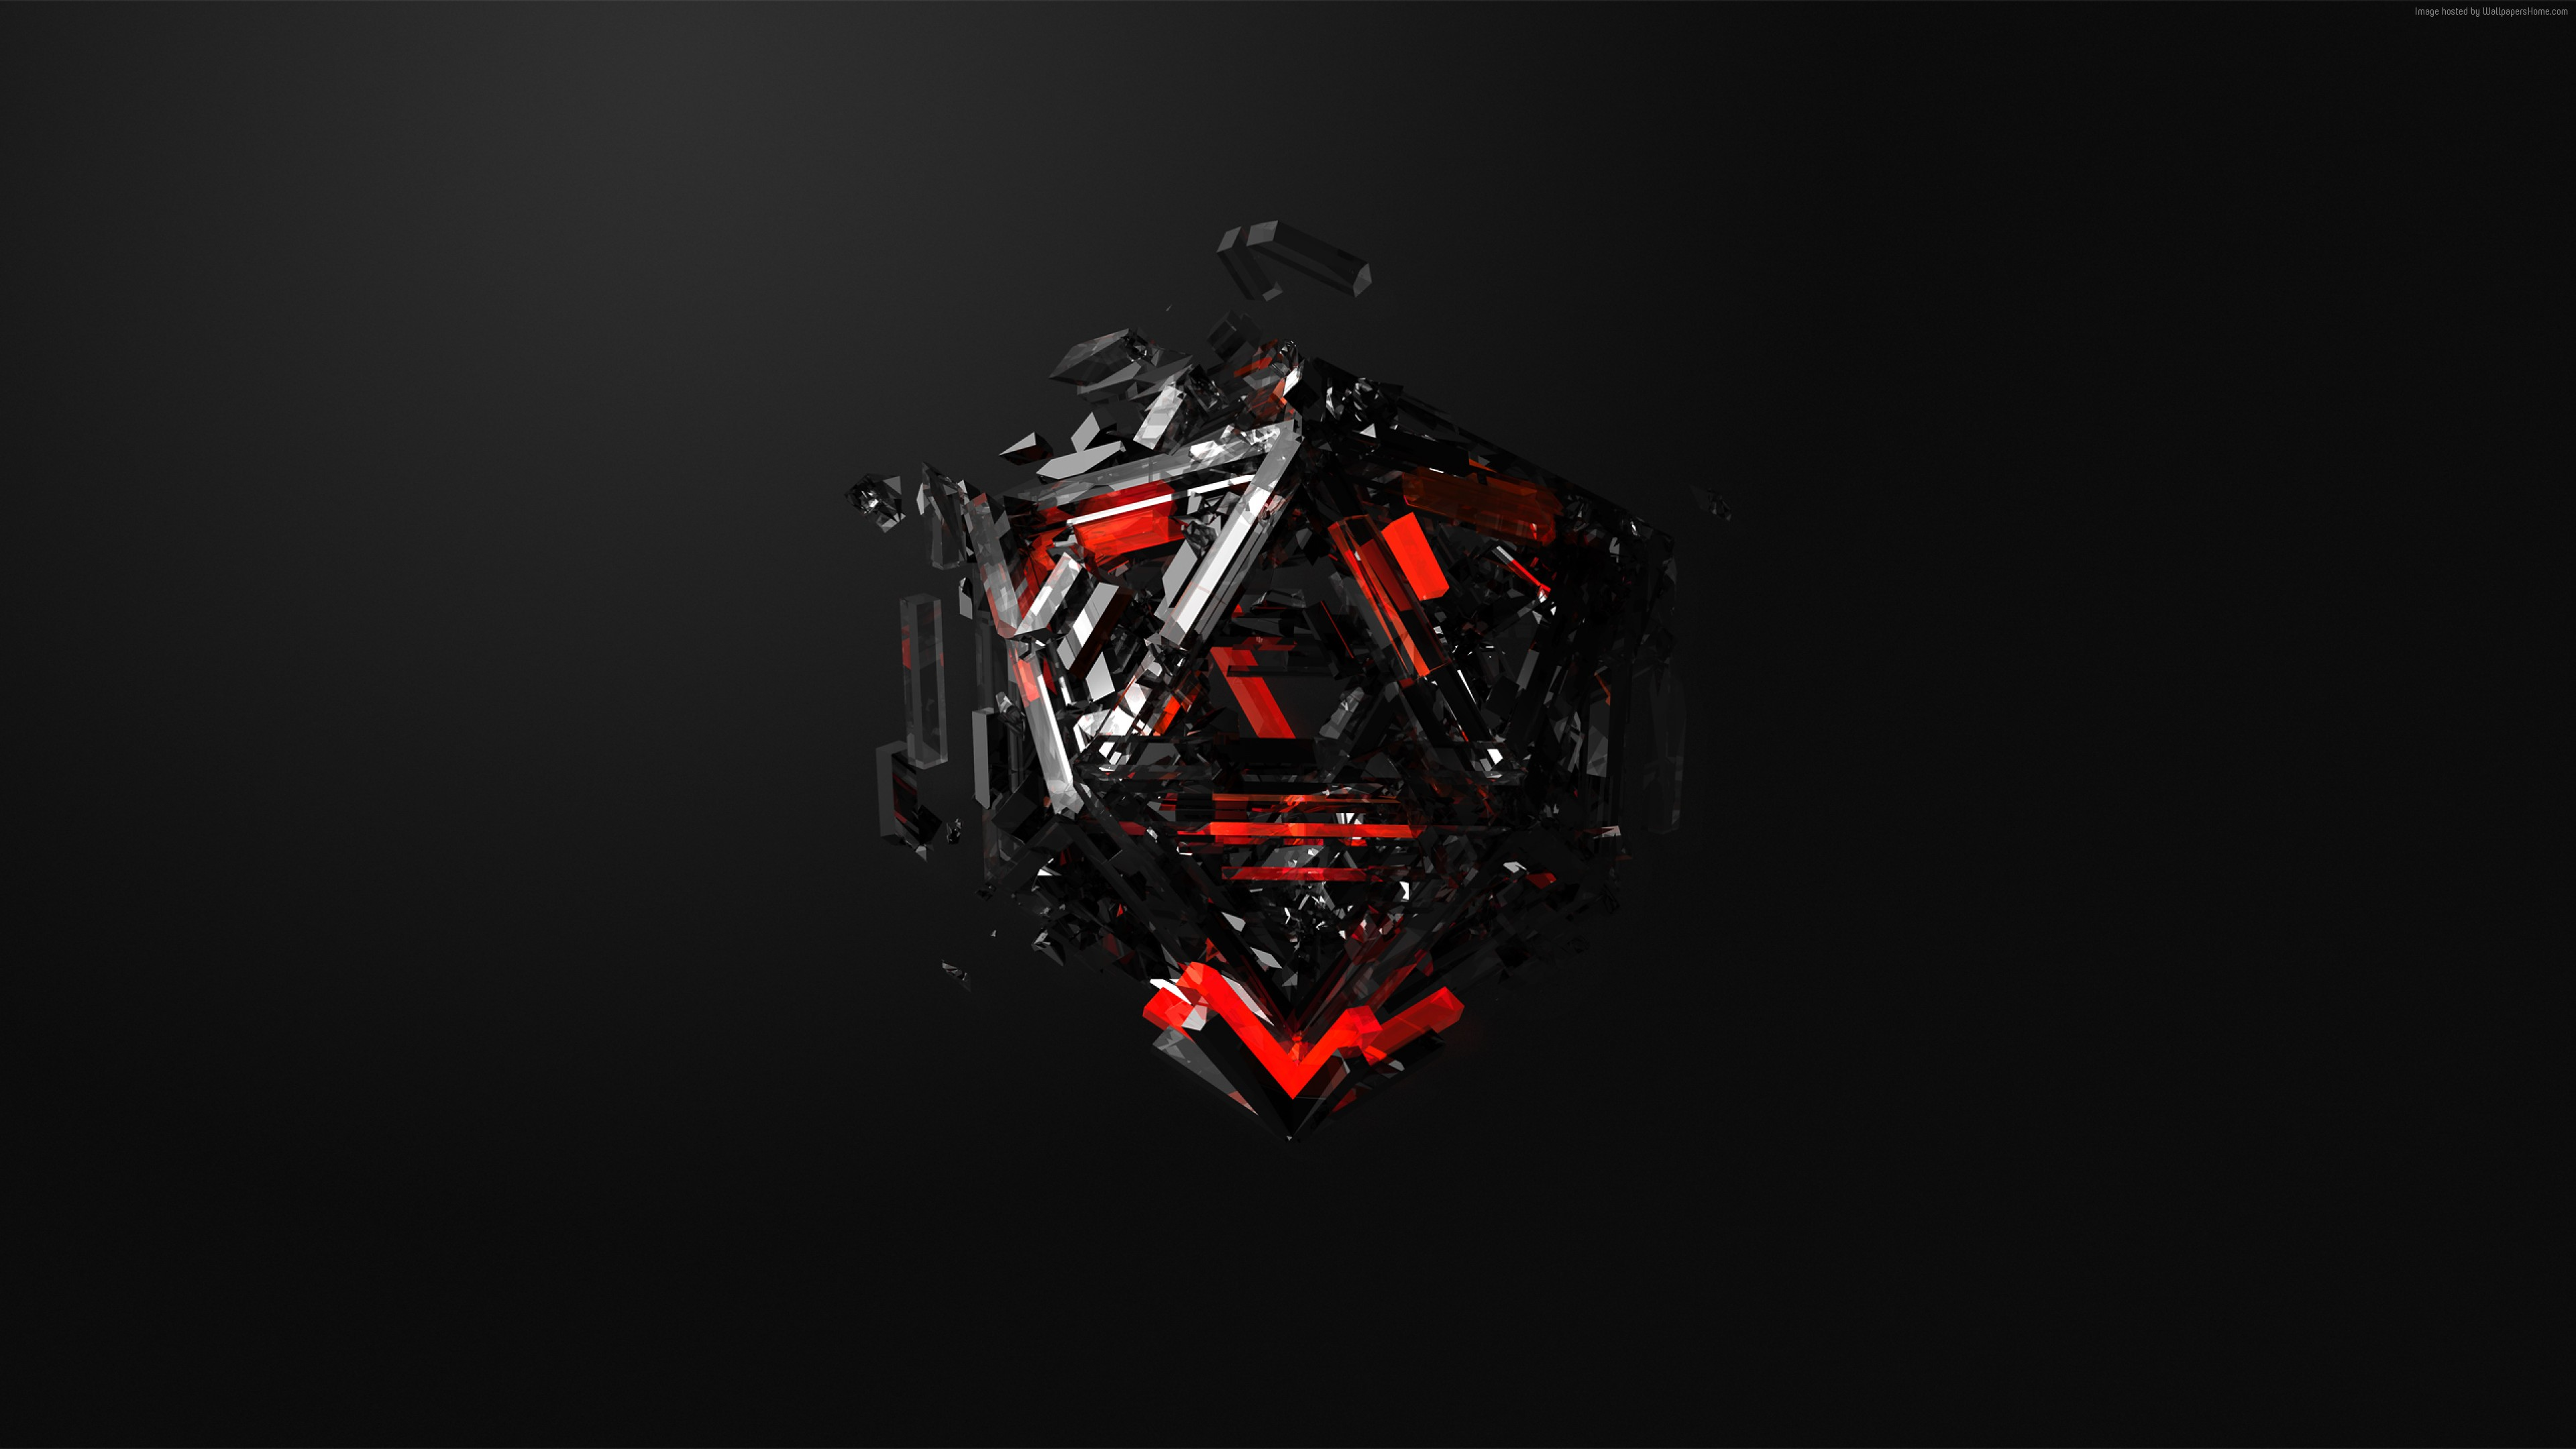 Wallpaper Triangles 3d Red Black Hd Abstract Red And Black Hd 3840x2160 Download Hd Wallpaper Wallpapertip